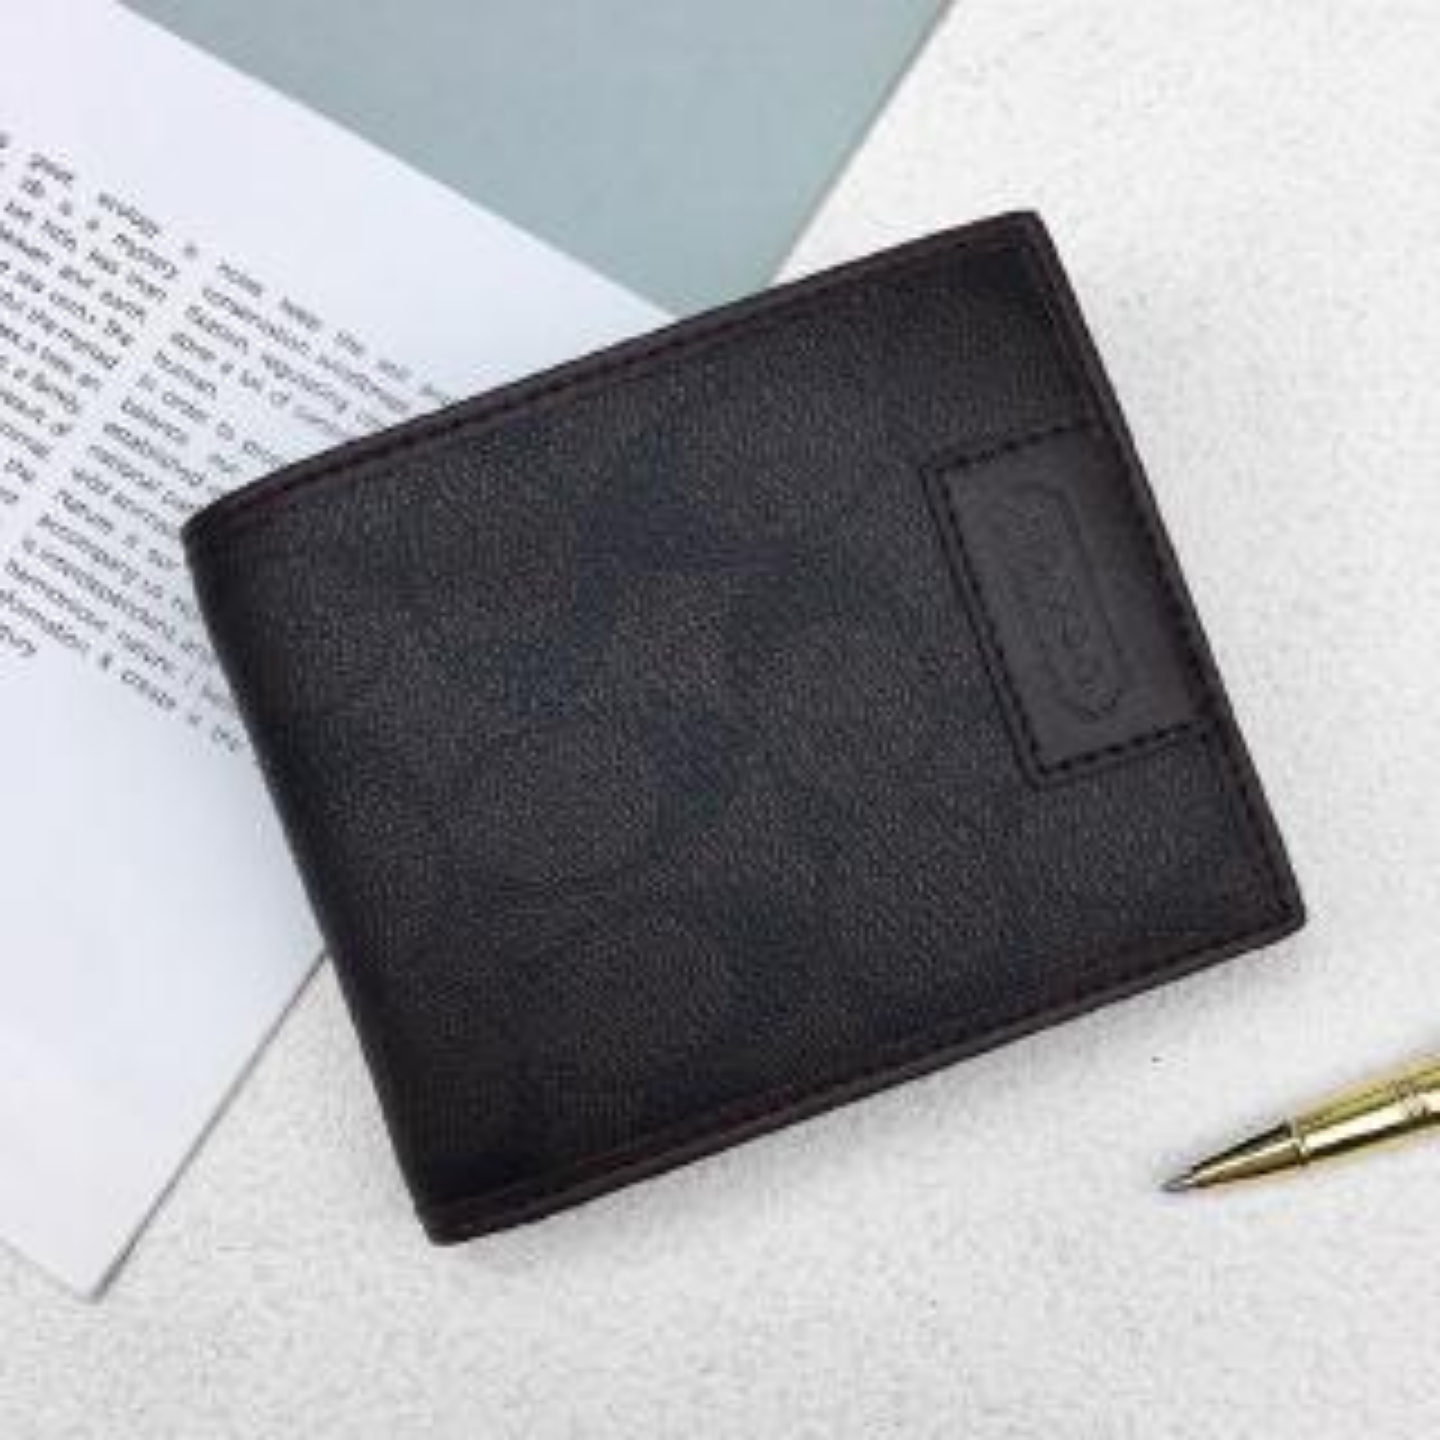 (SG COD) COACH Short Wallet Card Holder Package Two Fold Billfold Wallets Leather Coin Purse Poch Bag